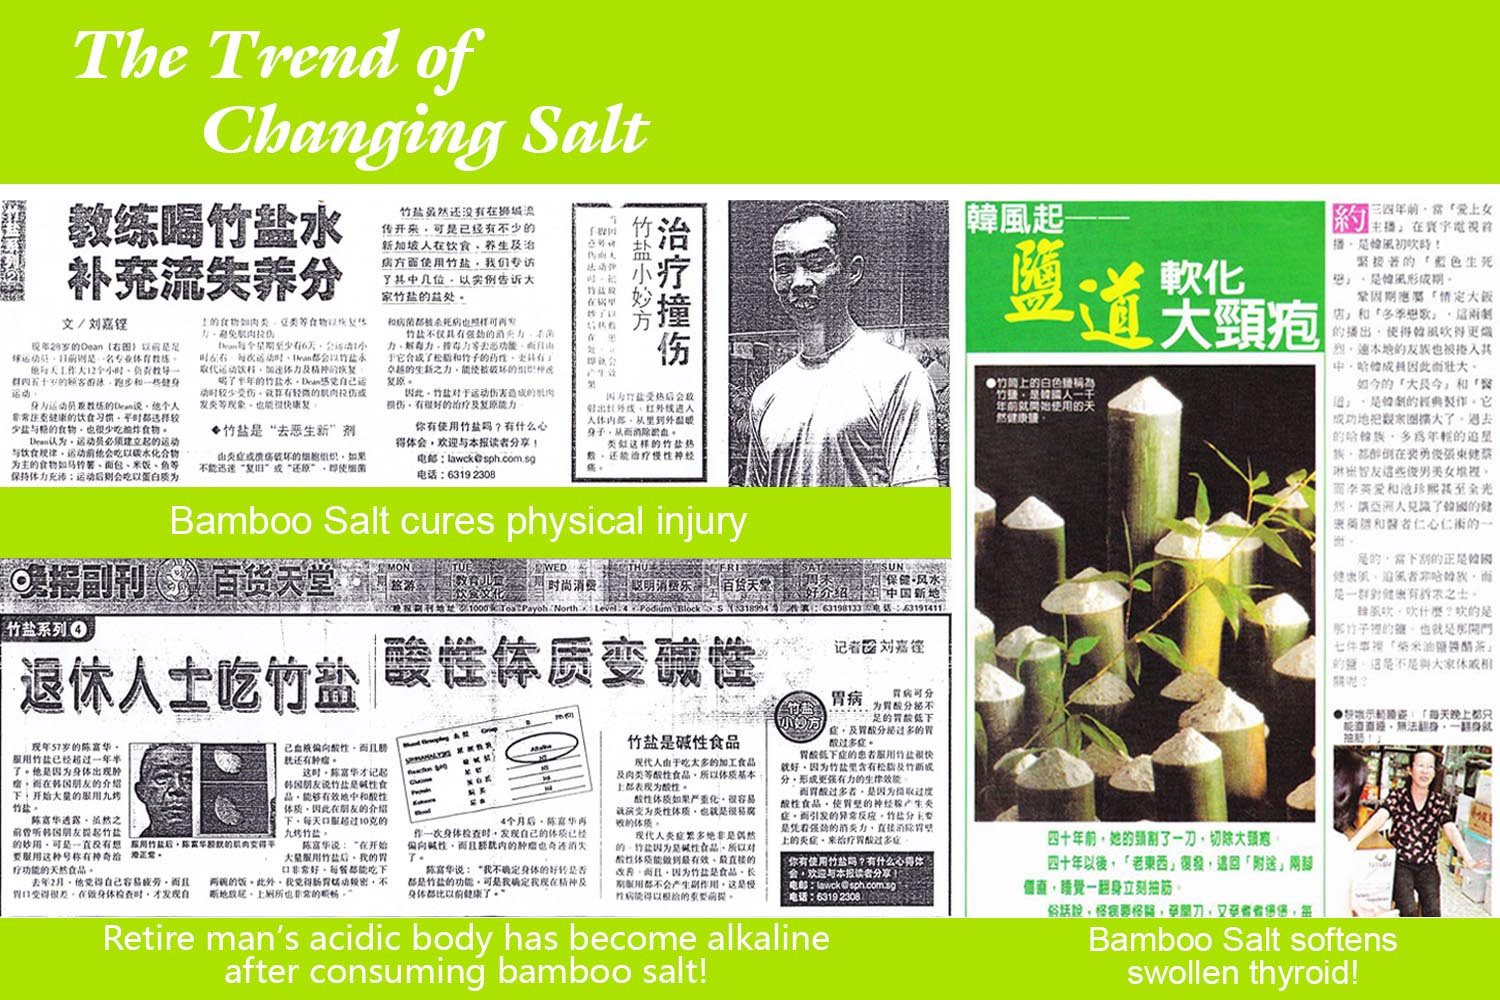 bamboo salt benefits featured on newspaper